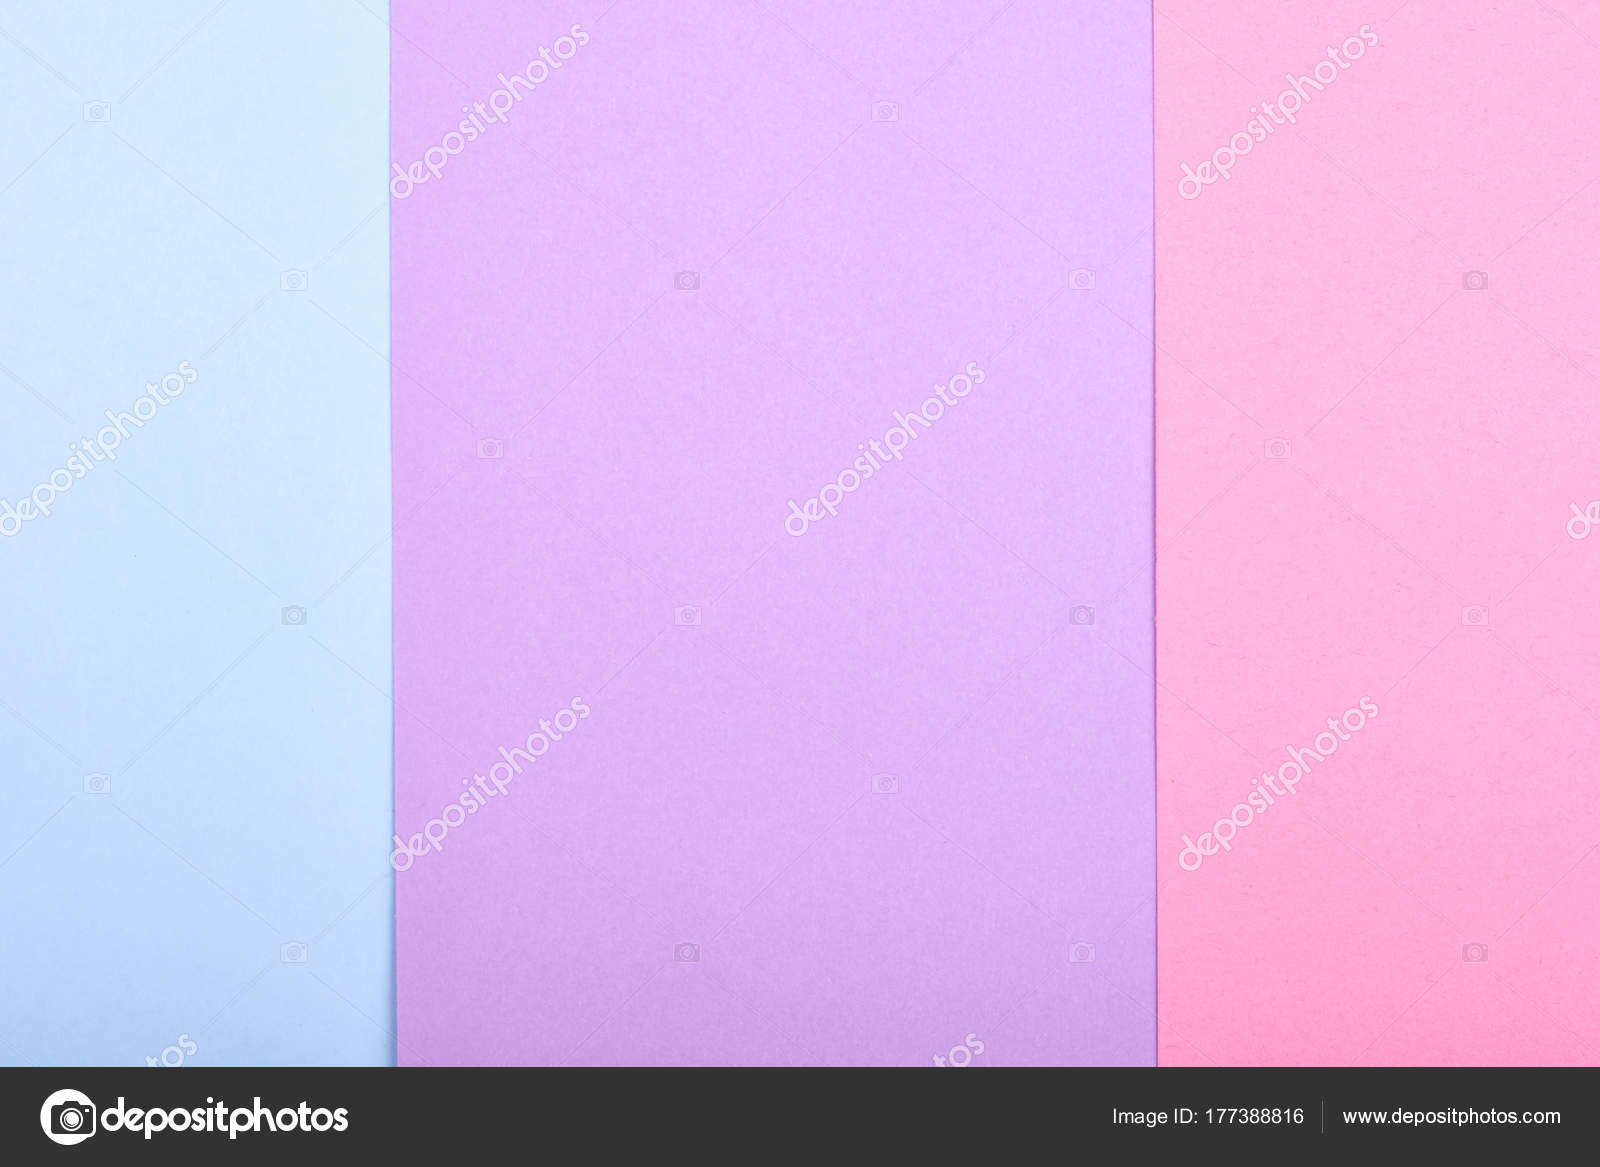 Material Design Style Of Color Paper Template For Background And